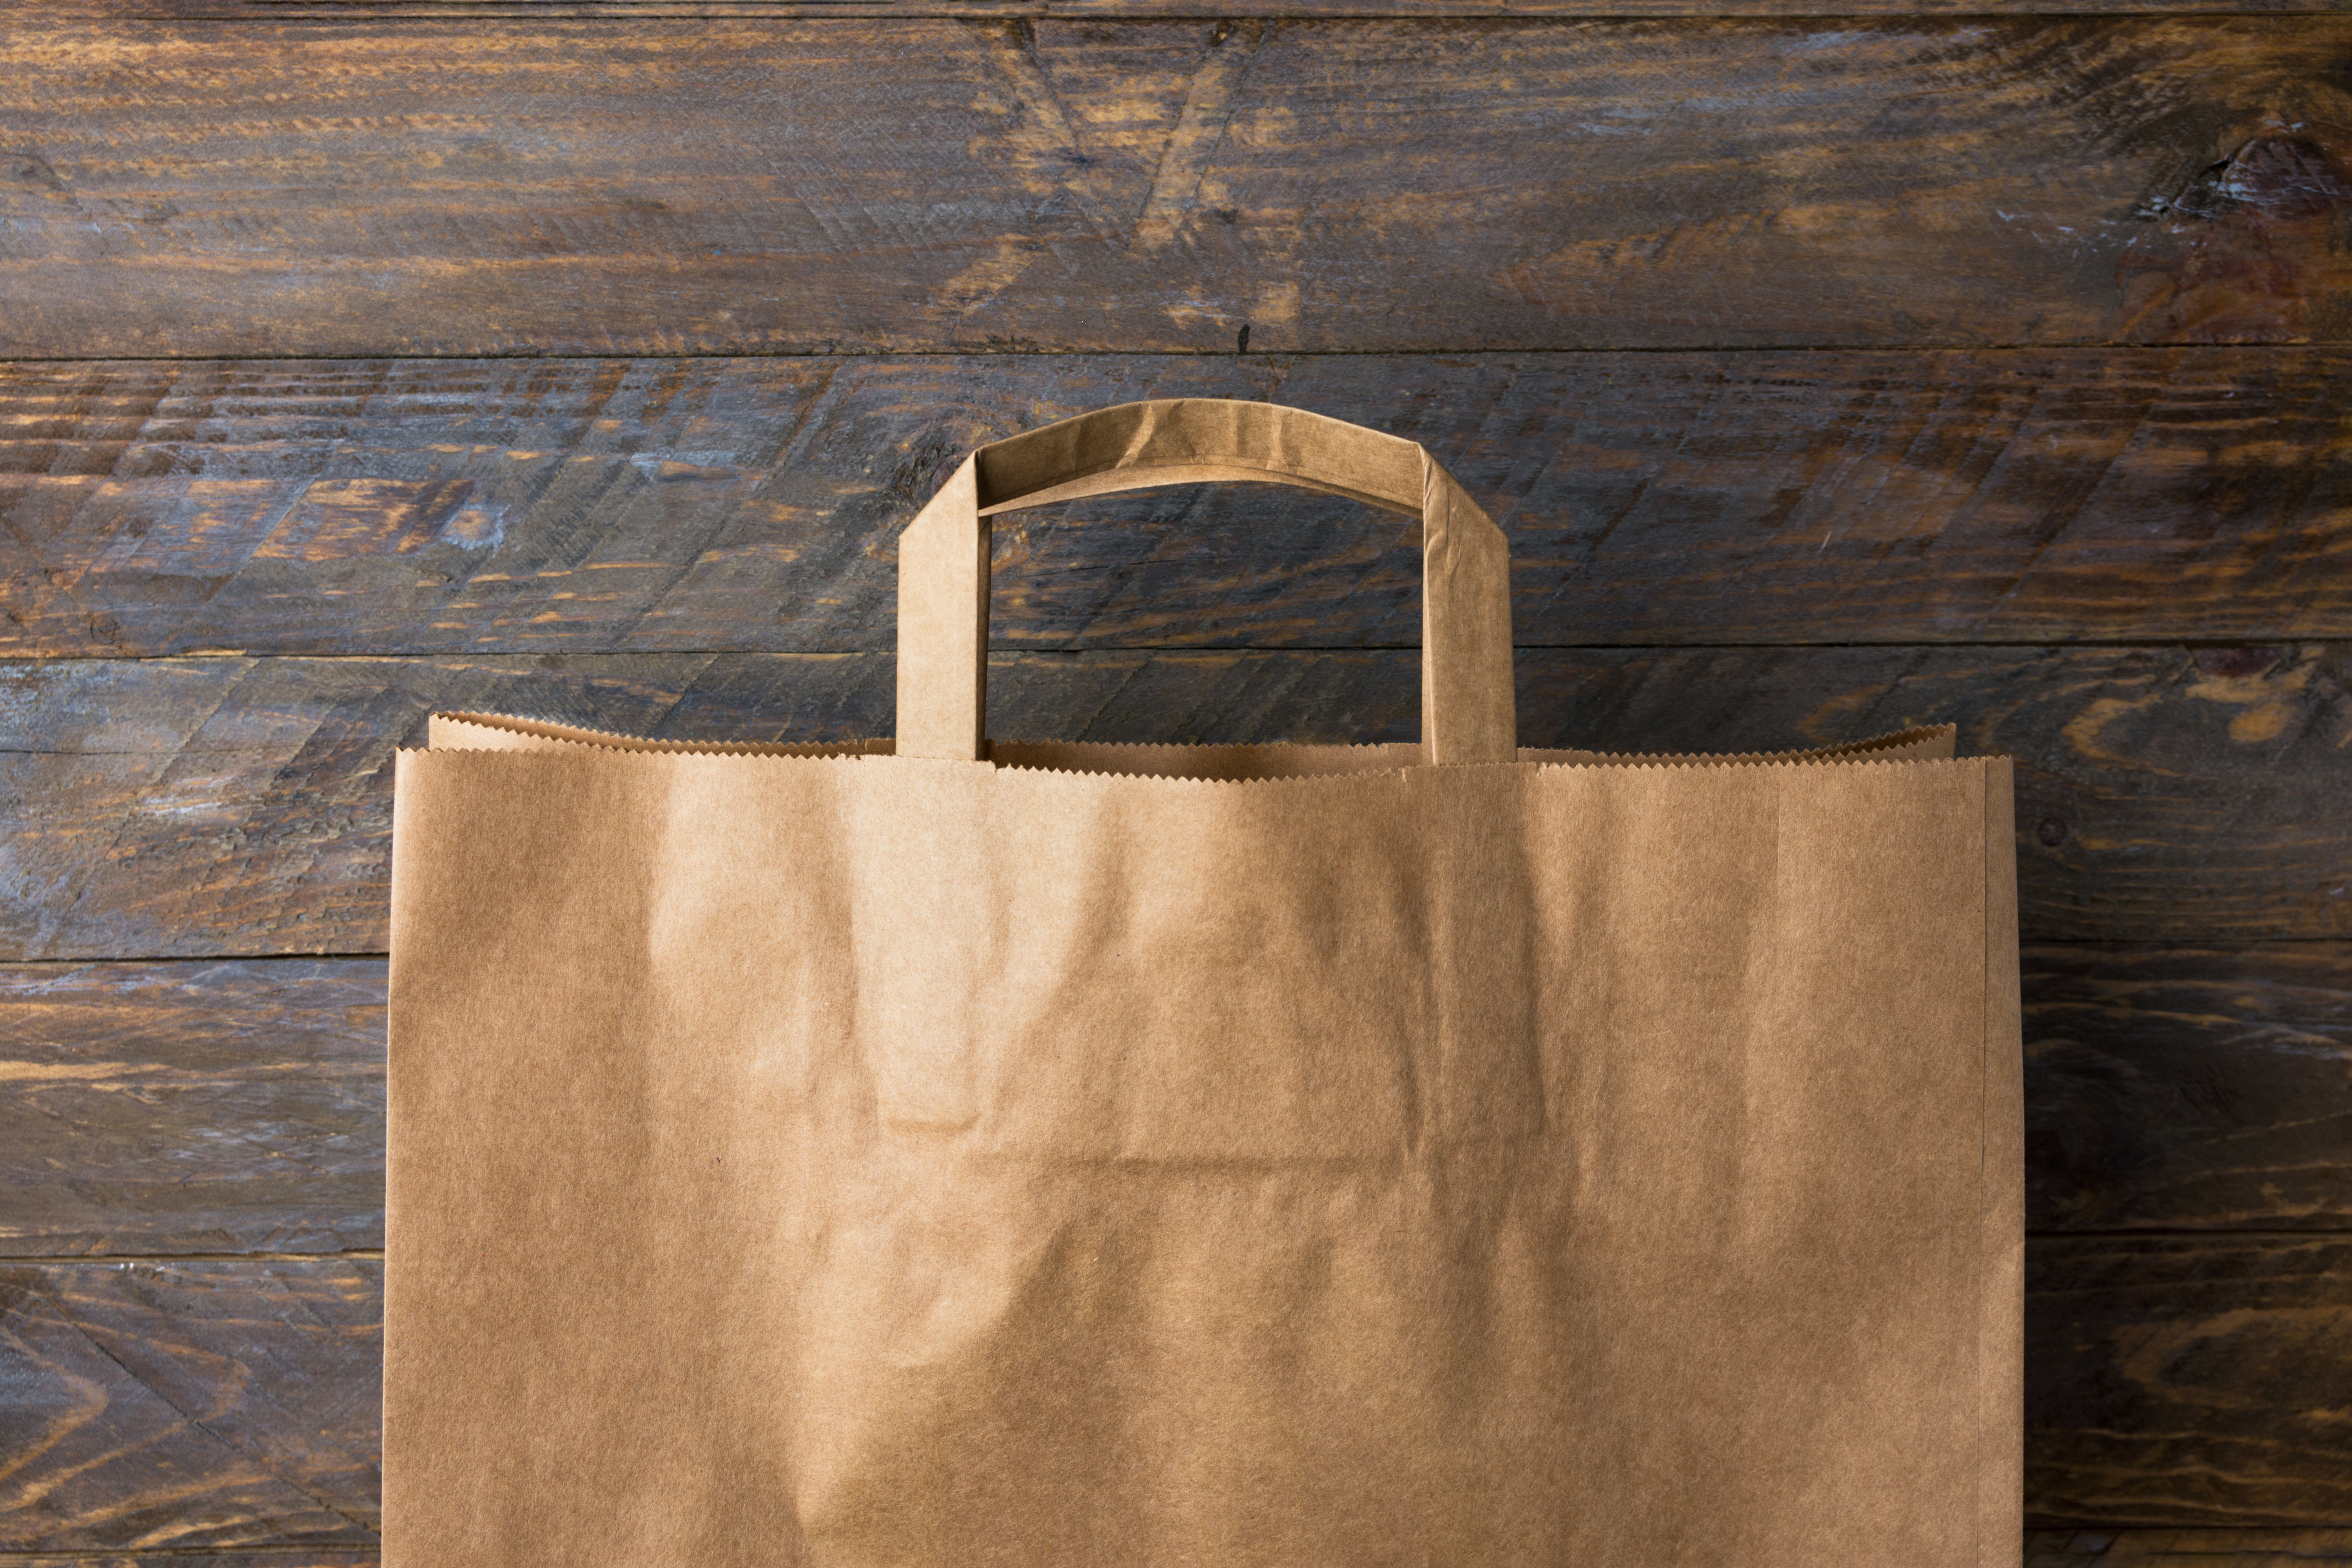 Brown kraft paper grocery shopping bag on wooden background. Plastic-free alternatives zero waste environmental protection nature friendly living.